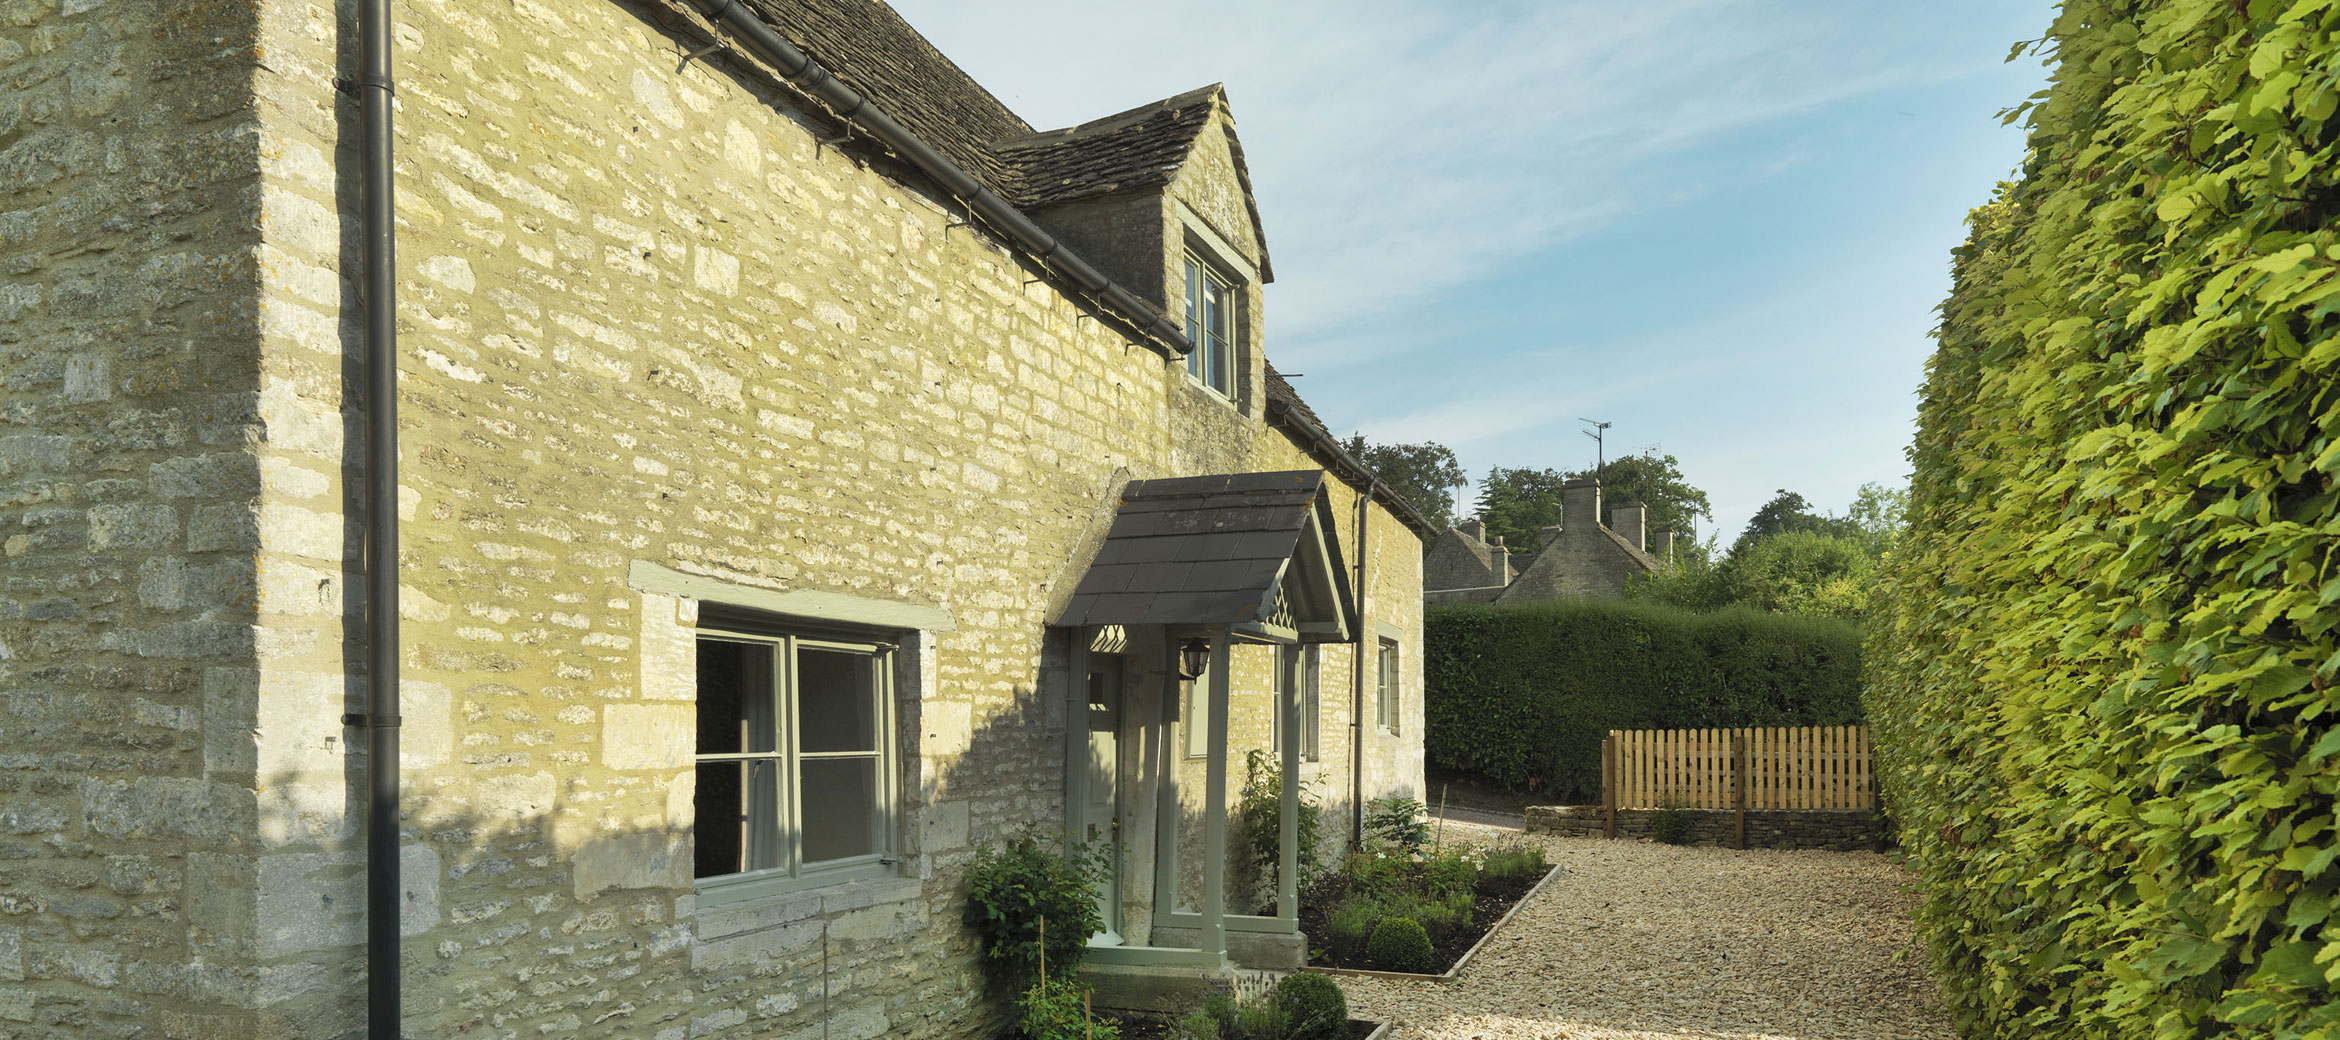 Home Farm Cottage Barnsley Luxury Cotswold Rentals